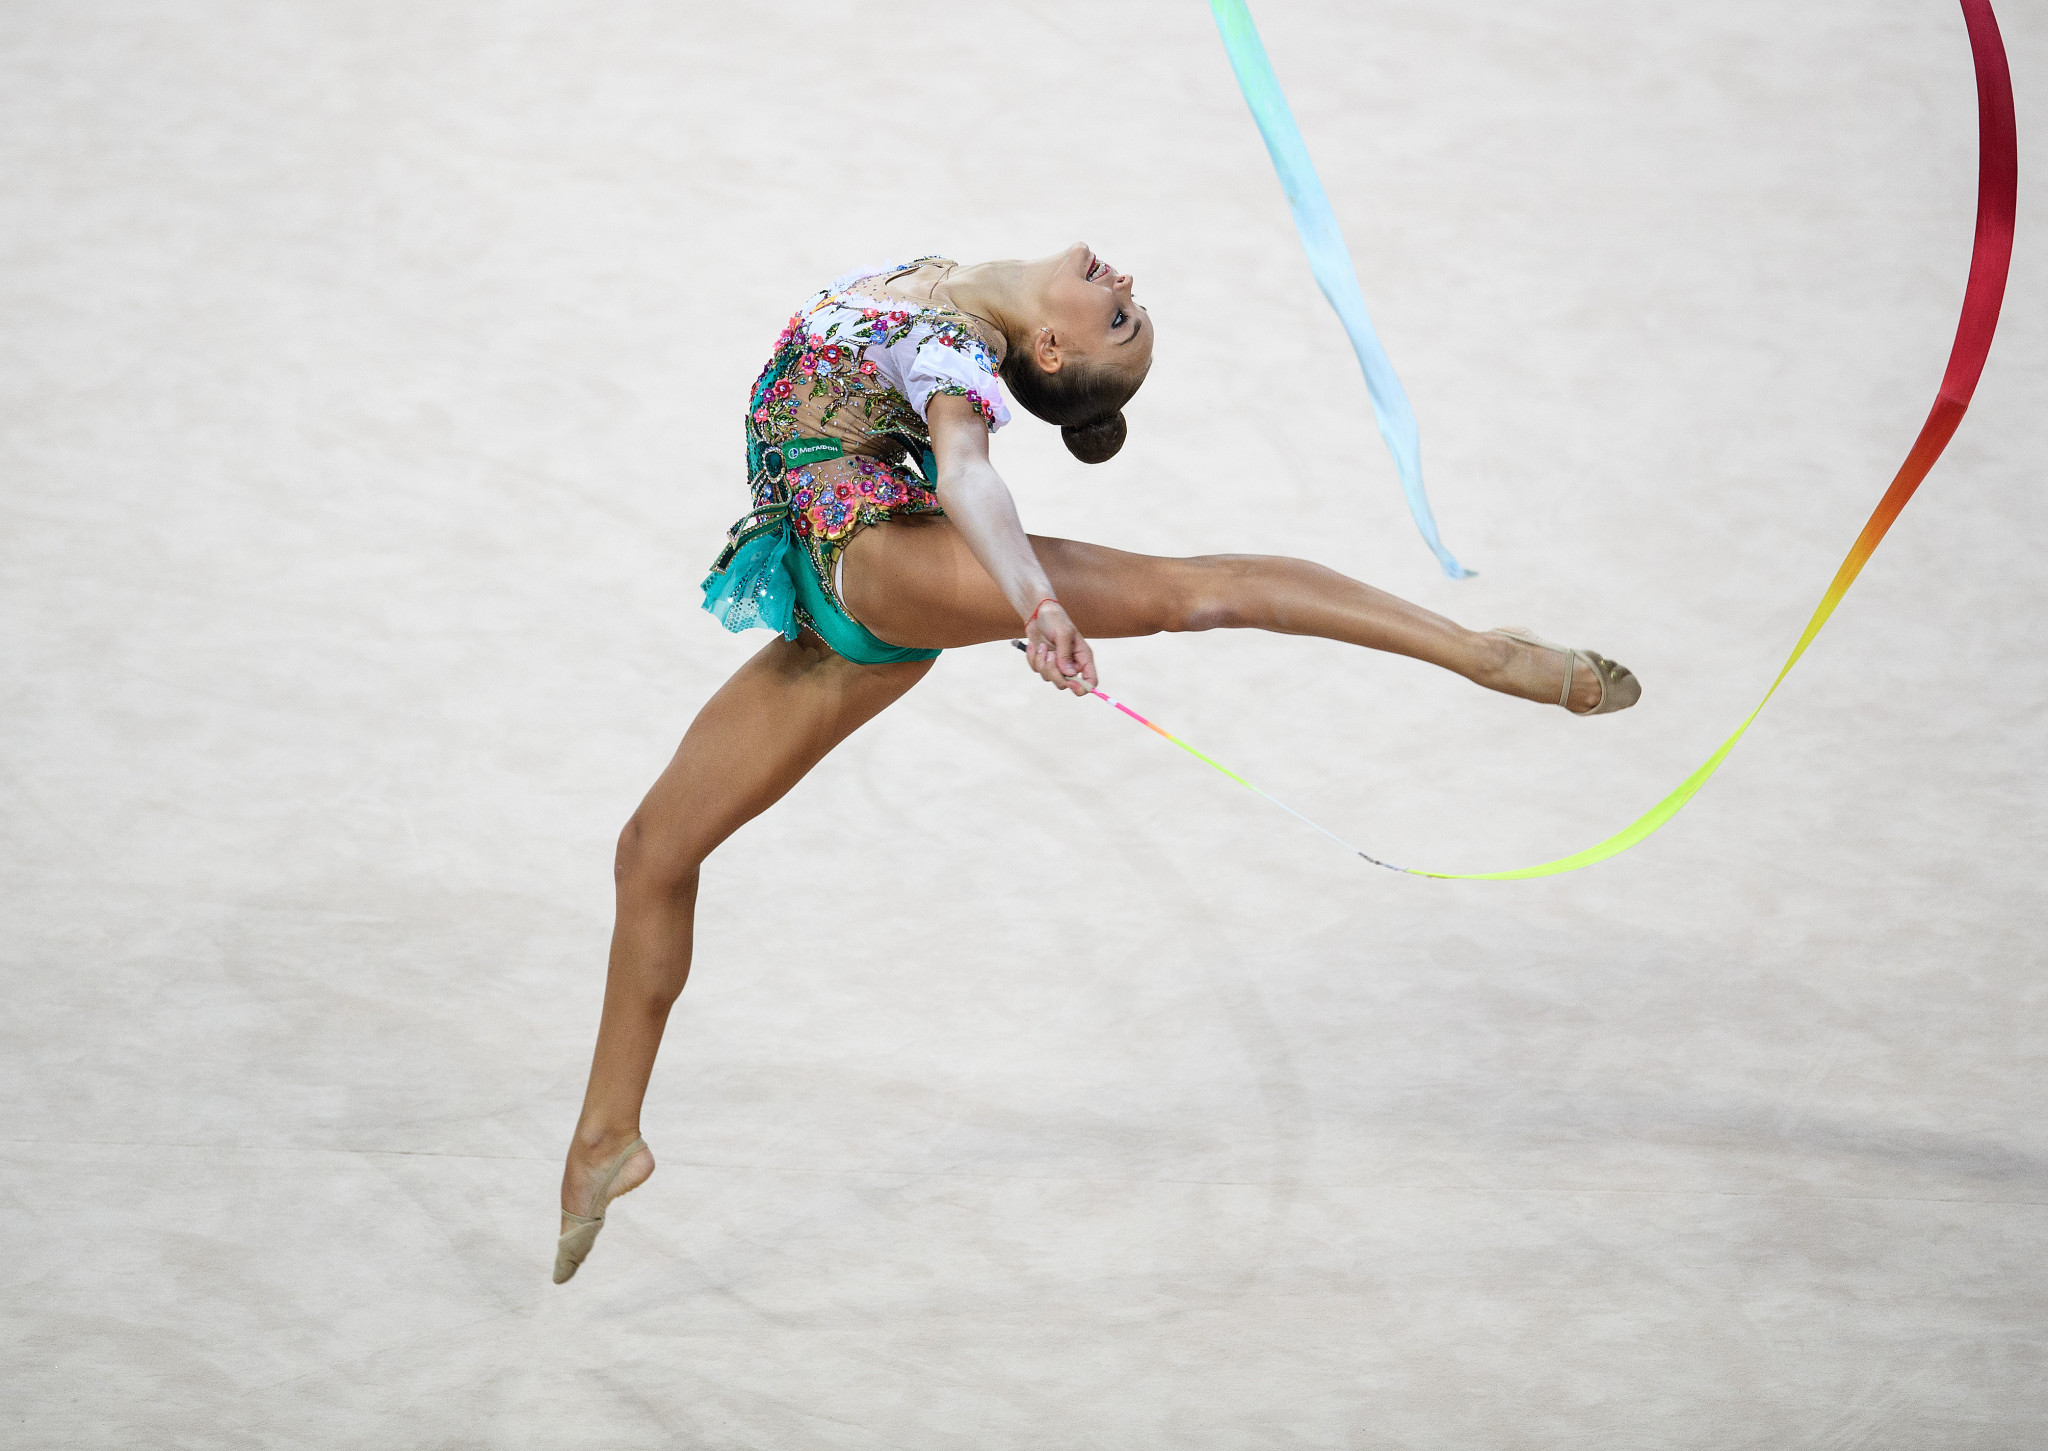 Arina Averina finished runner-up behind her sister ©Getty Images